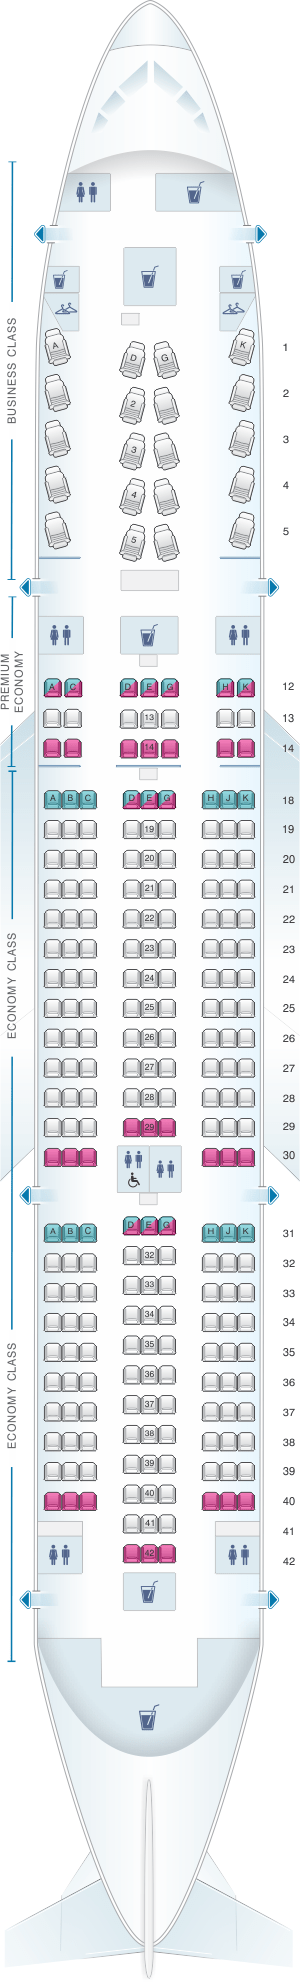 Seat Map For Air Canada Boeing B787 8 788 International